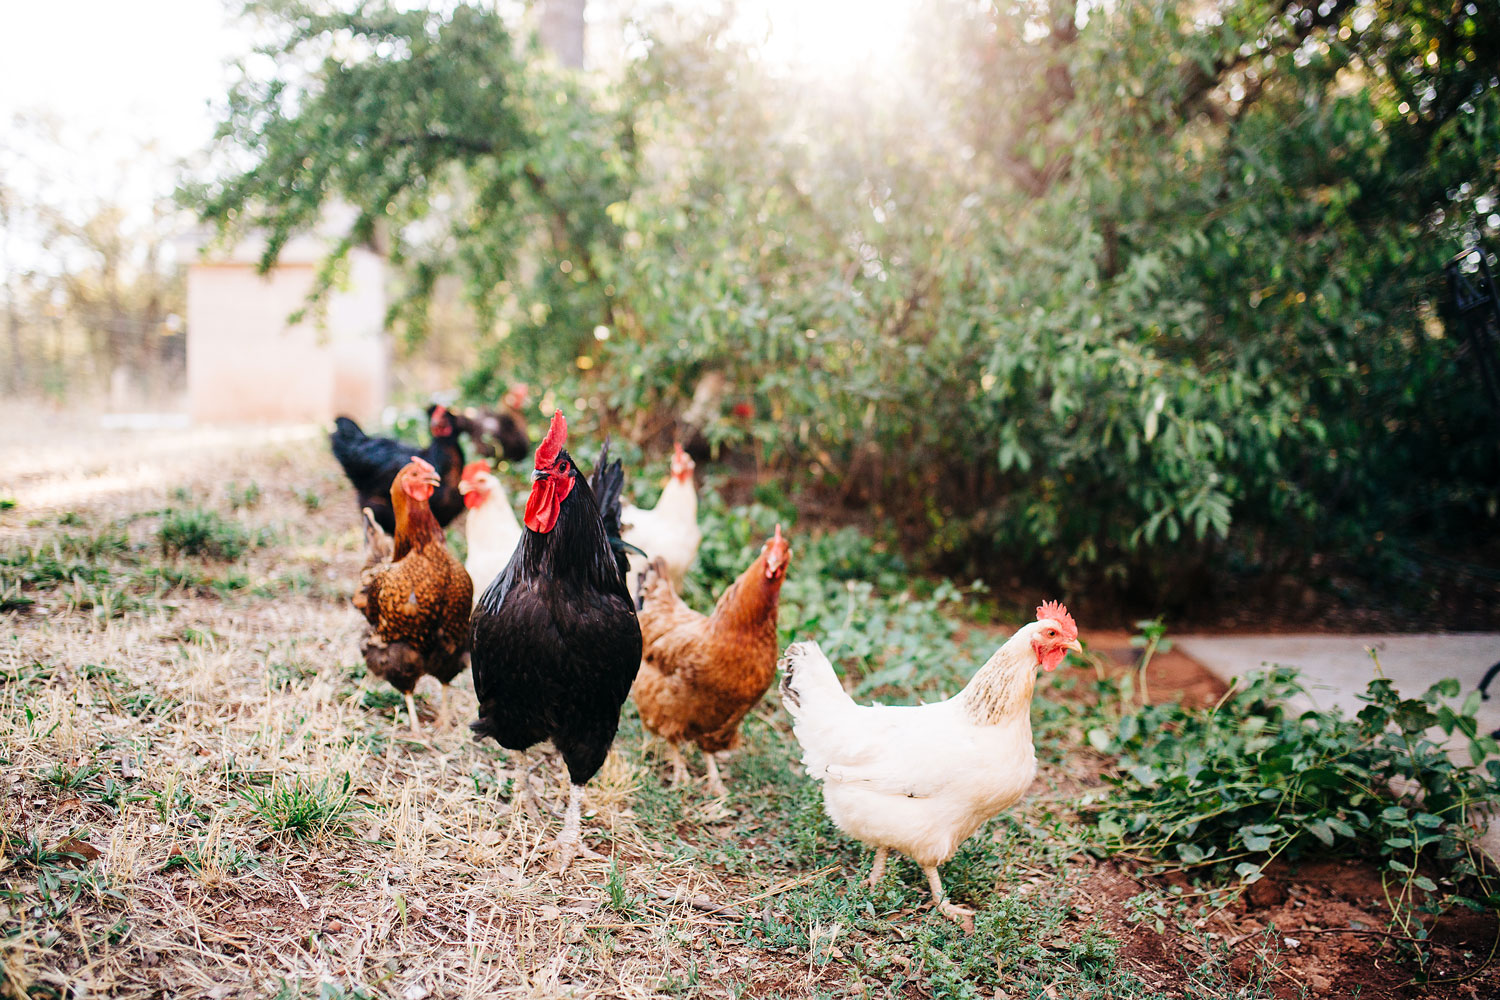 Some chickens run around in a backyard during an in-home lifestyle photo session with Amy Wright Photography in Sacramento, California.